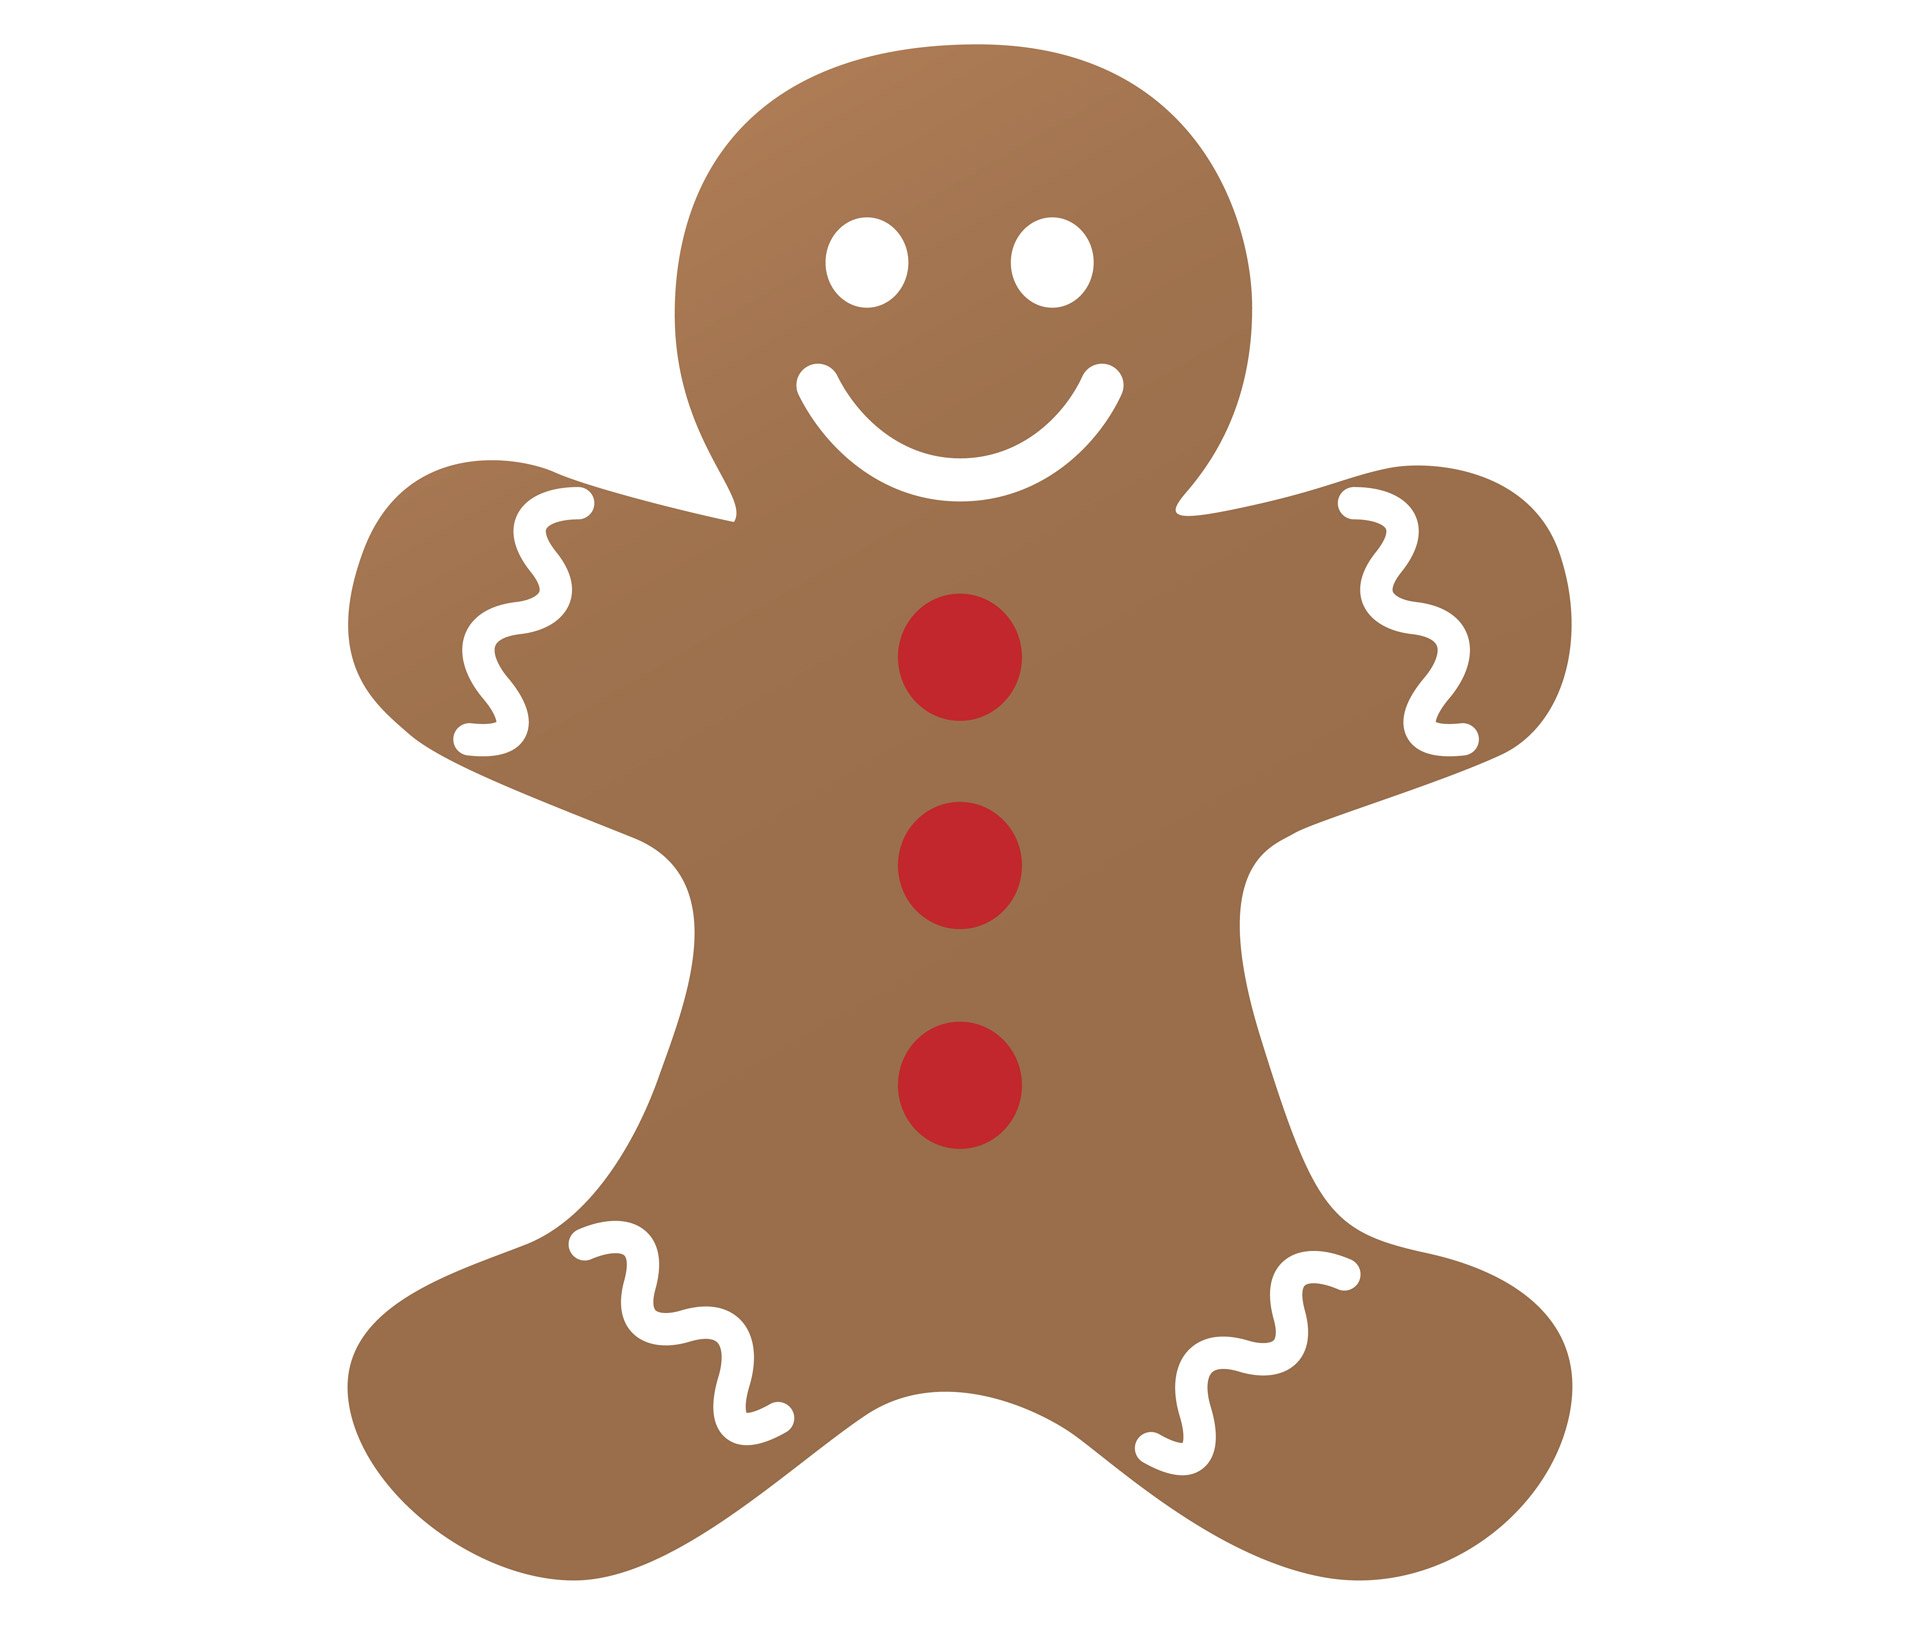 Gingerbread man clipart free stock photo-Gingerbread man clipart free stock photo public domain pictures-0